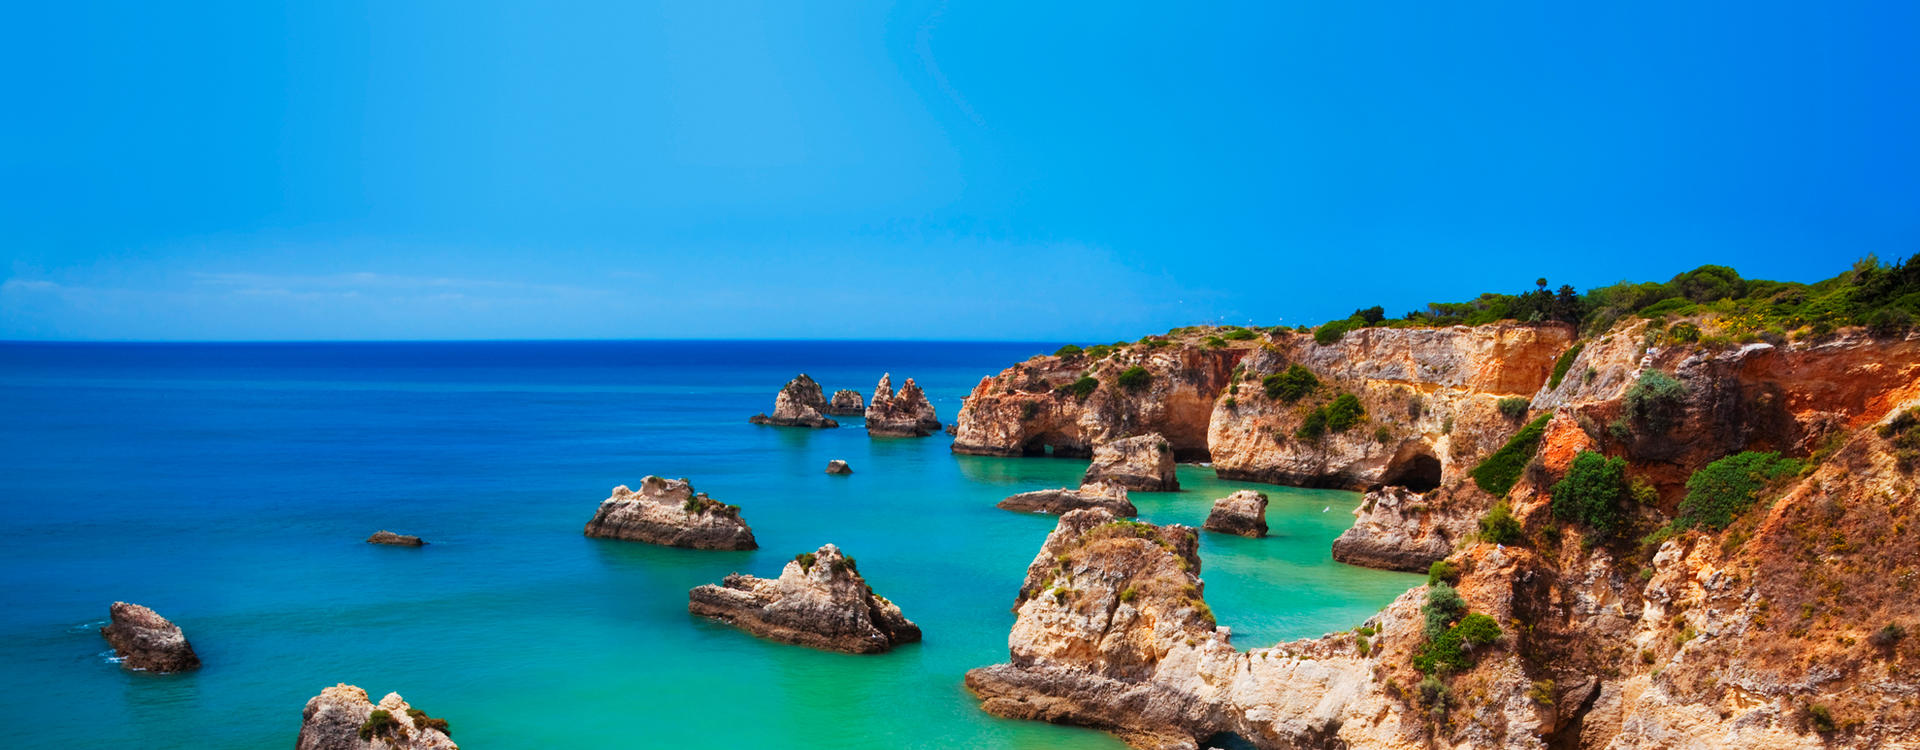 TI-Marina-Portimao_A-Trip-to-the-Beach